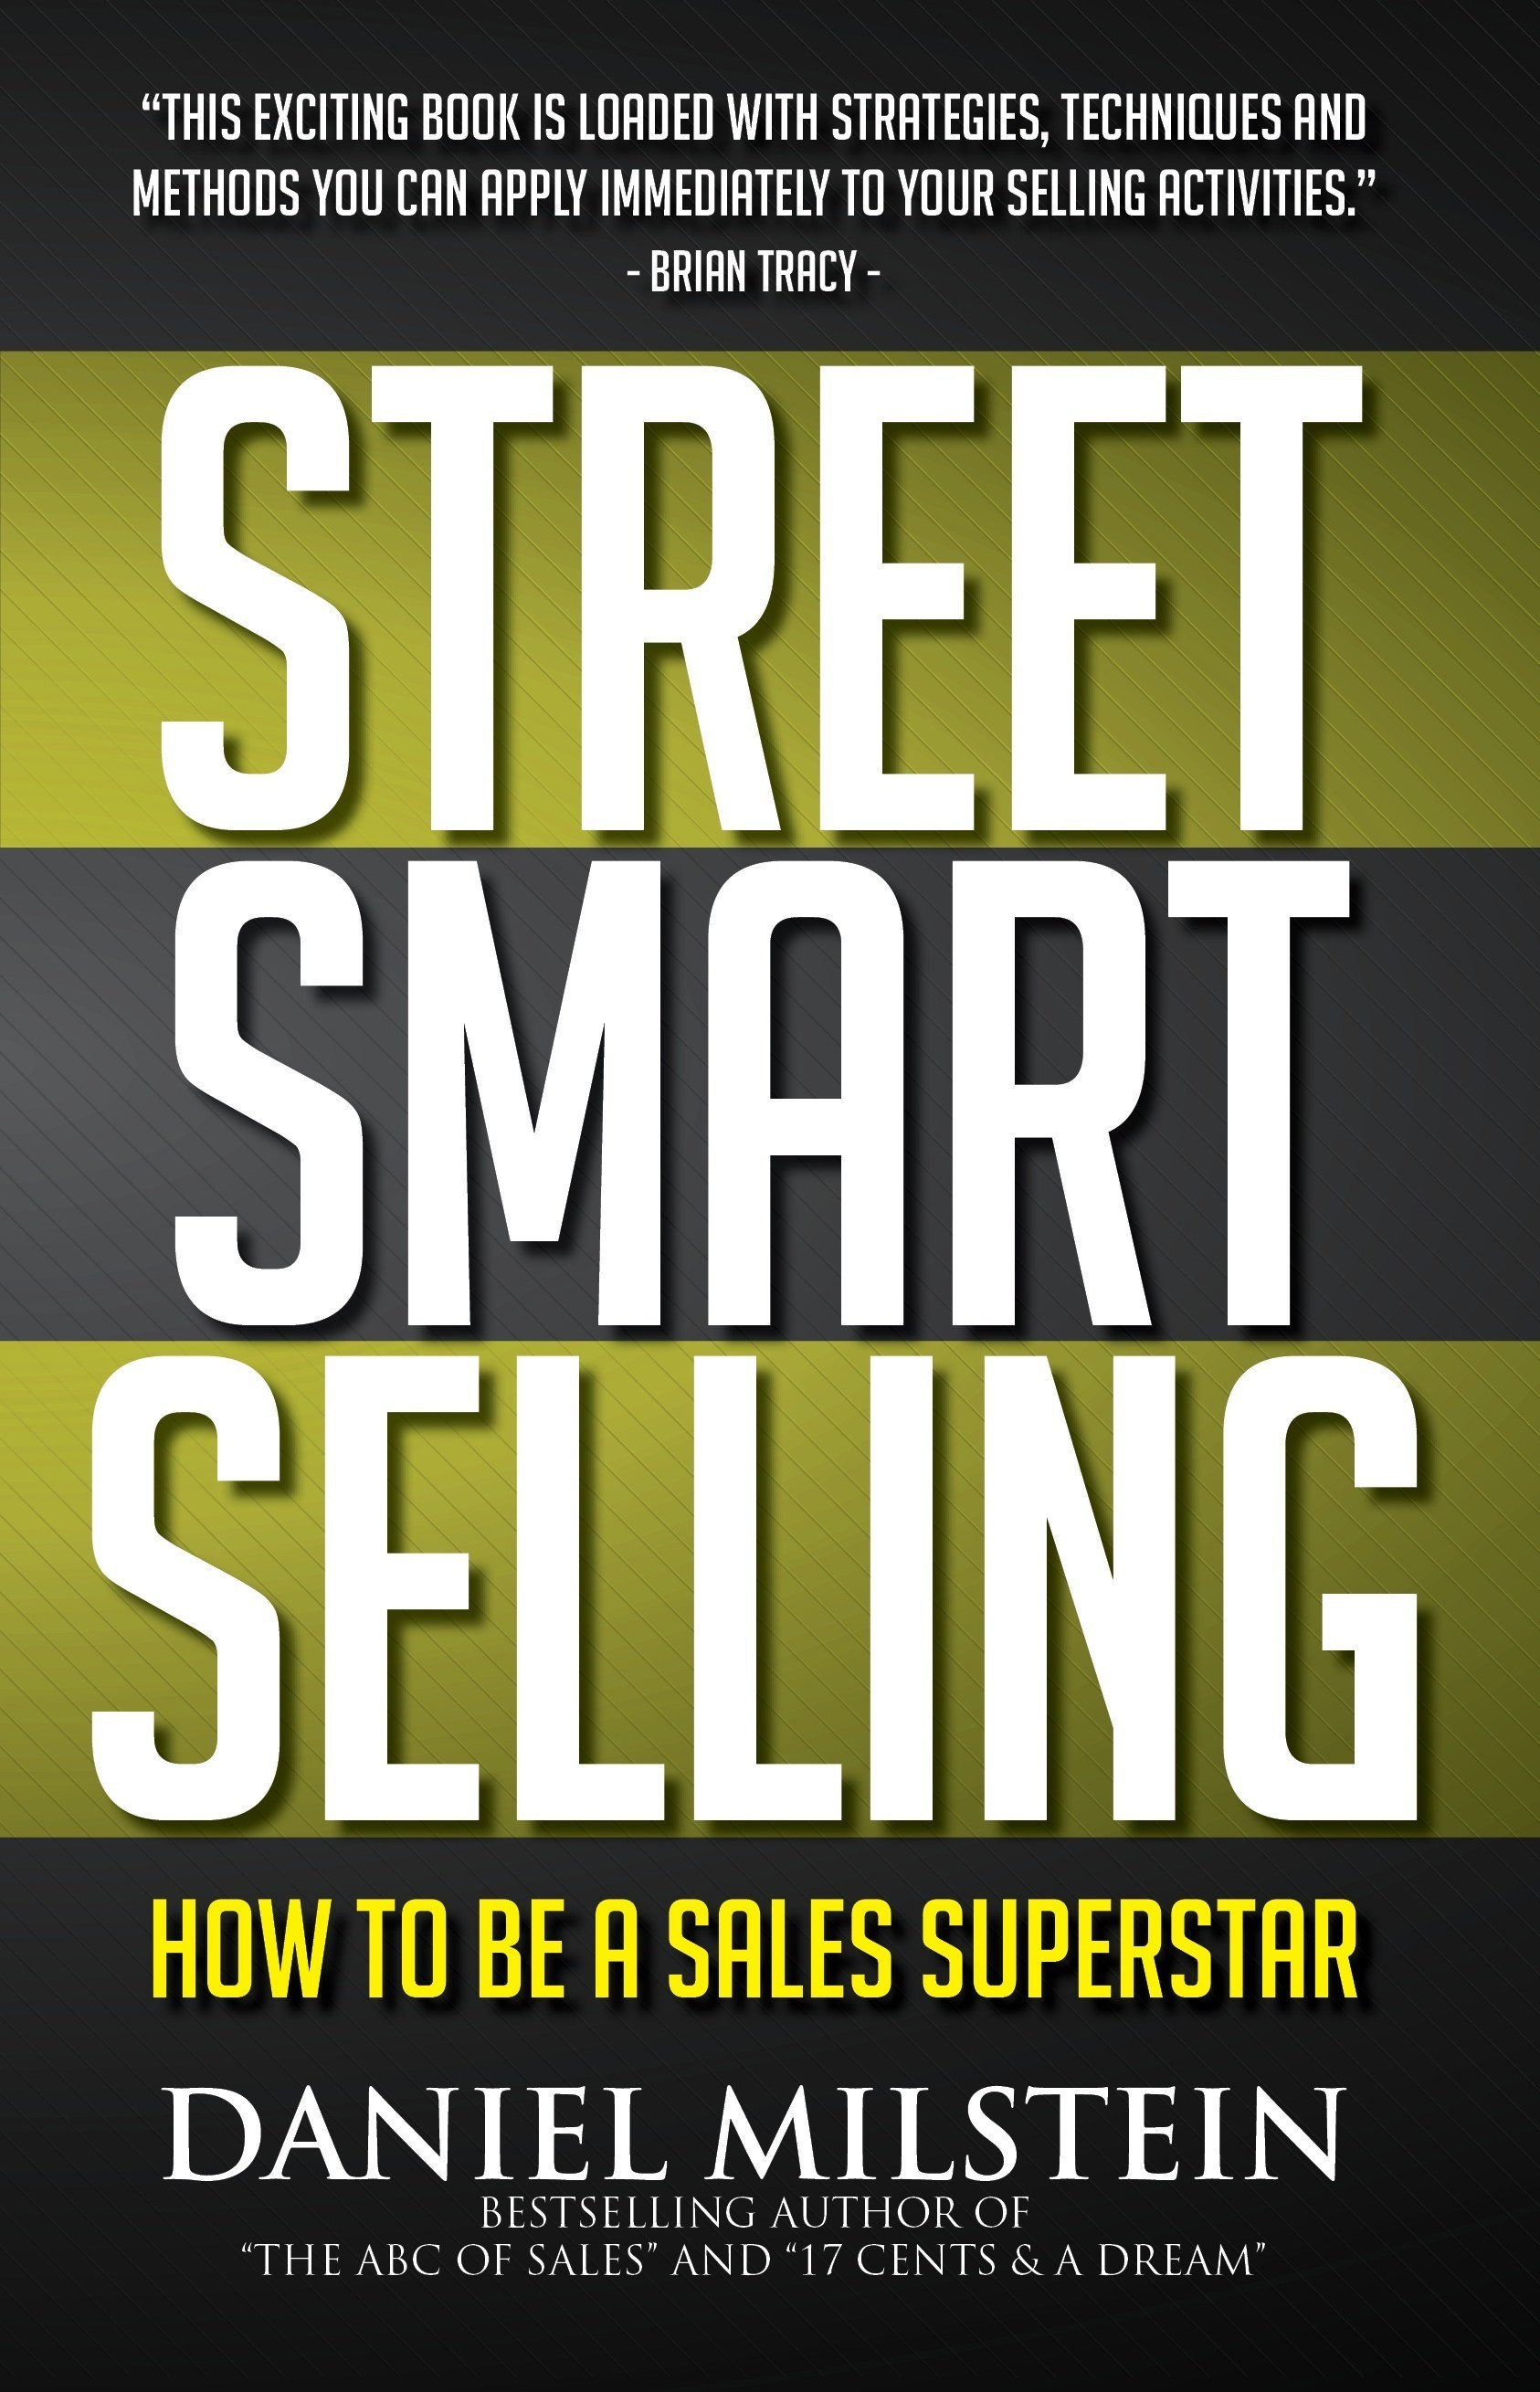 Dan Milstein Releases Third Book on STREET SMART SELLING